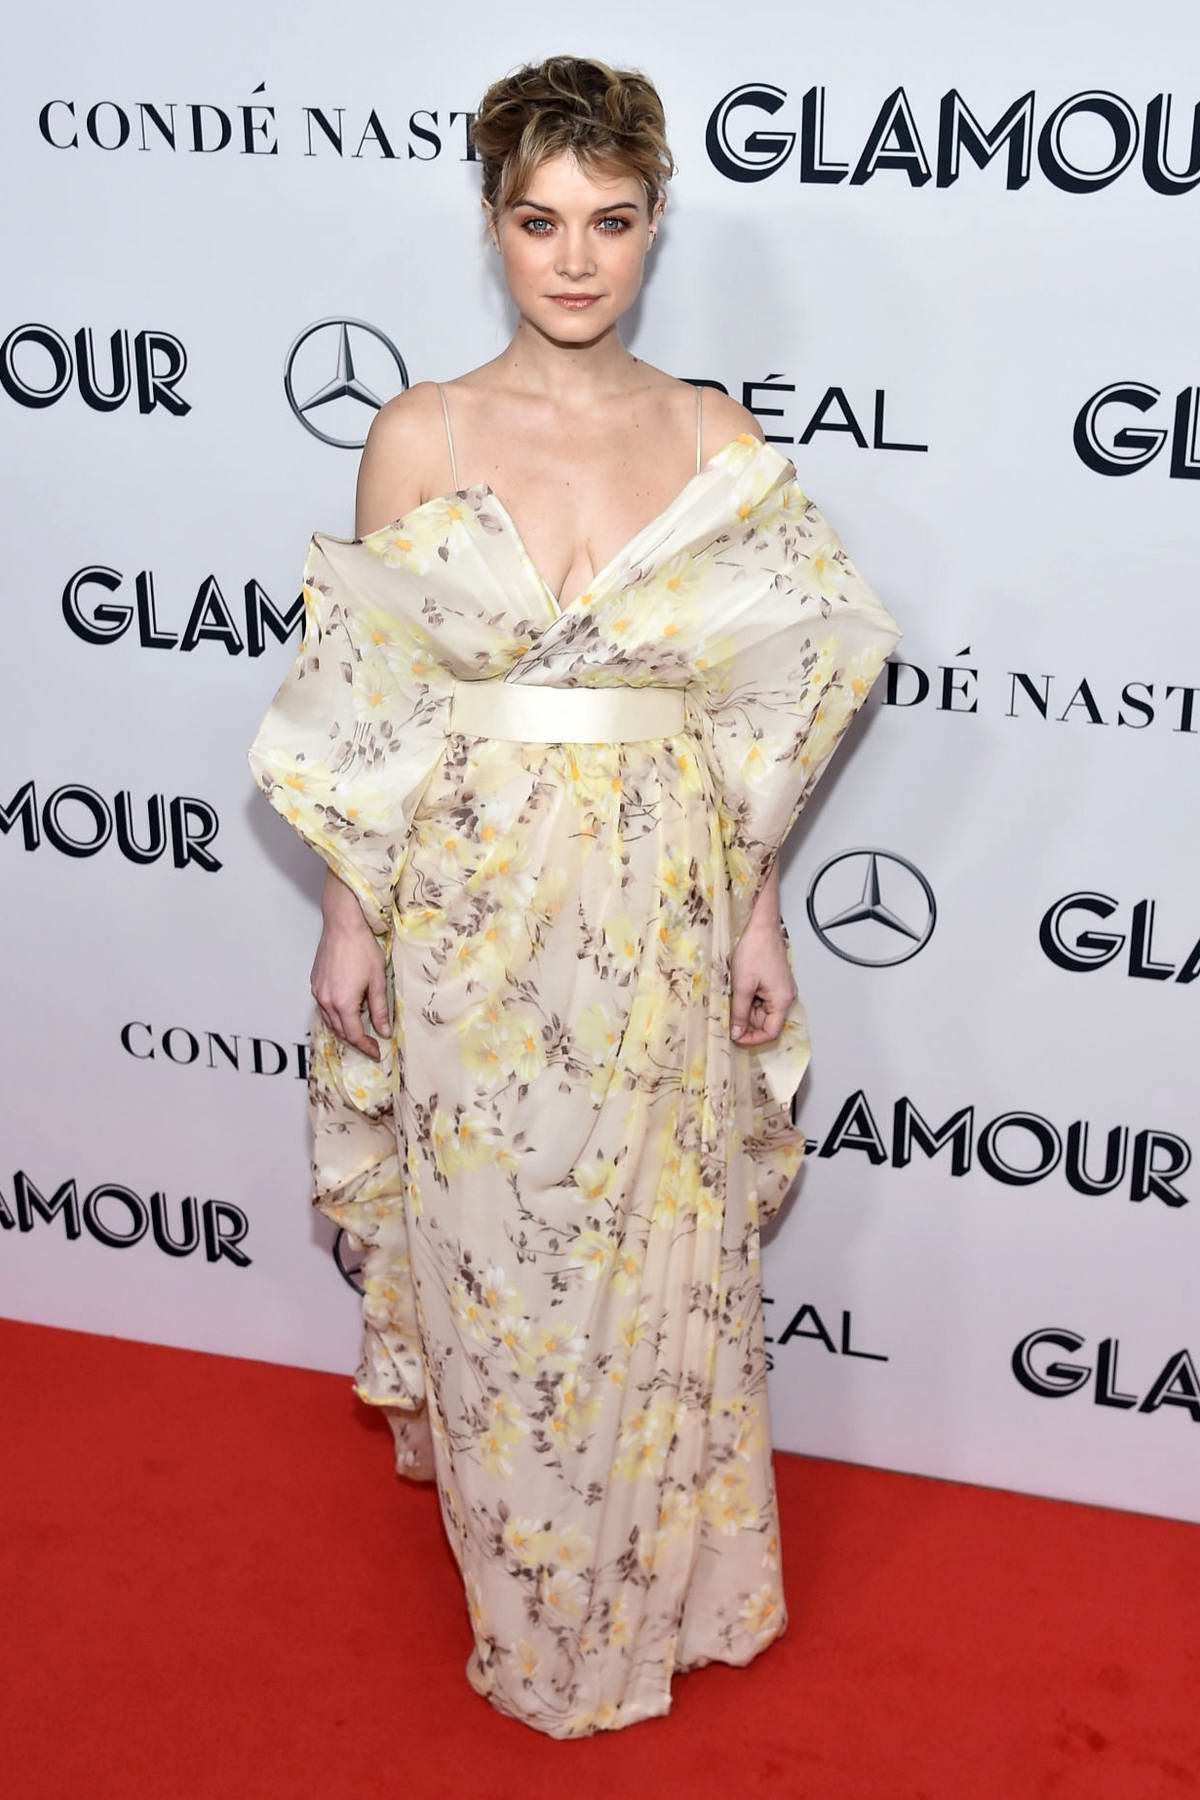 Sarah Jones attends the 2019 Glamour Women of the Year Awards at Alice Tully Hall in New York City